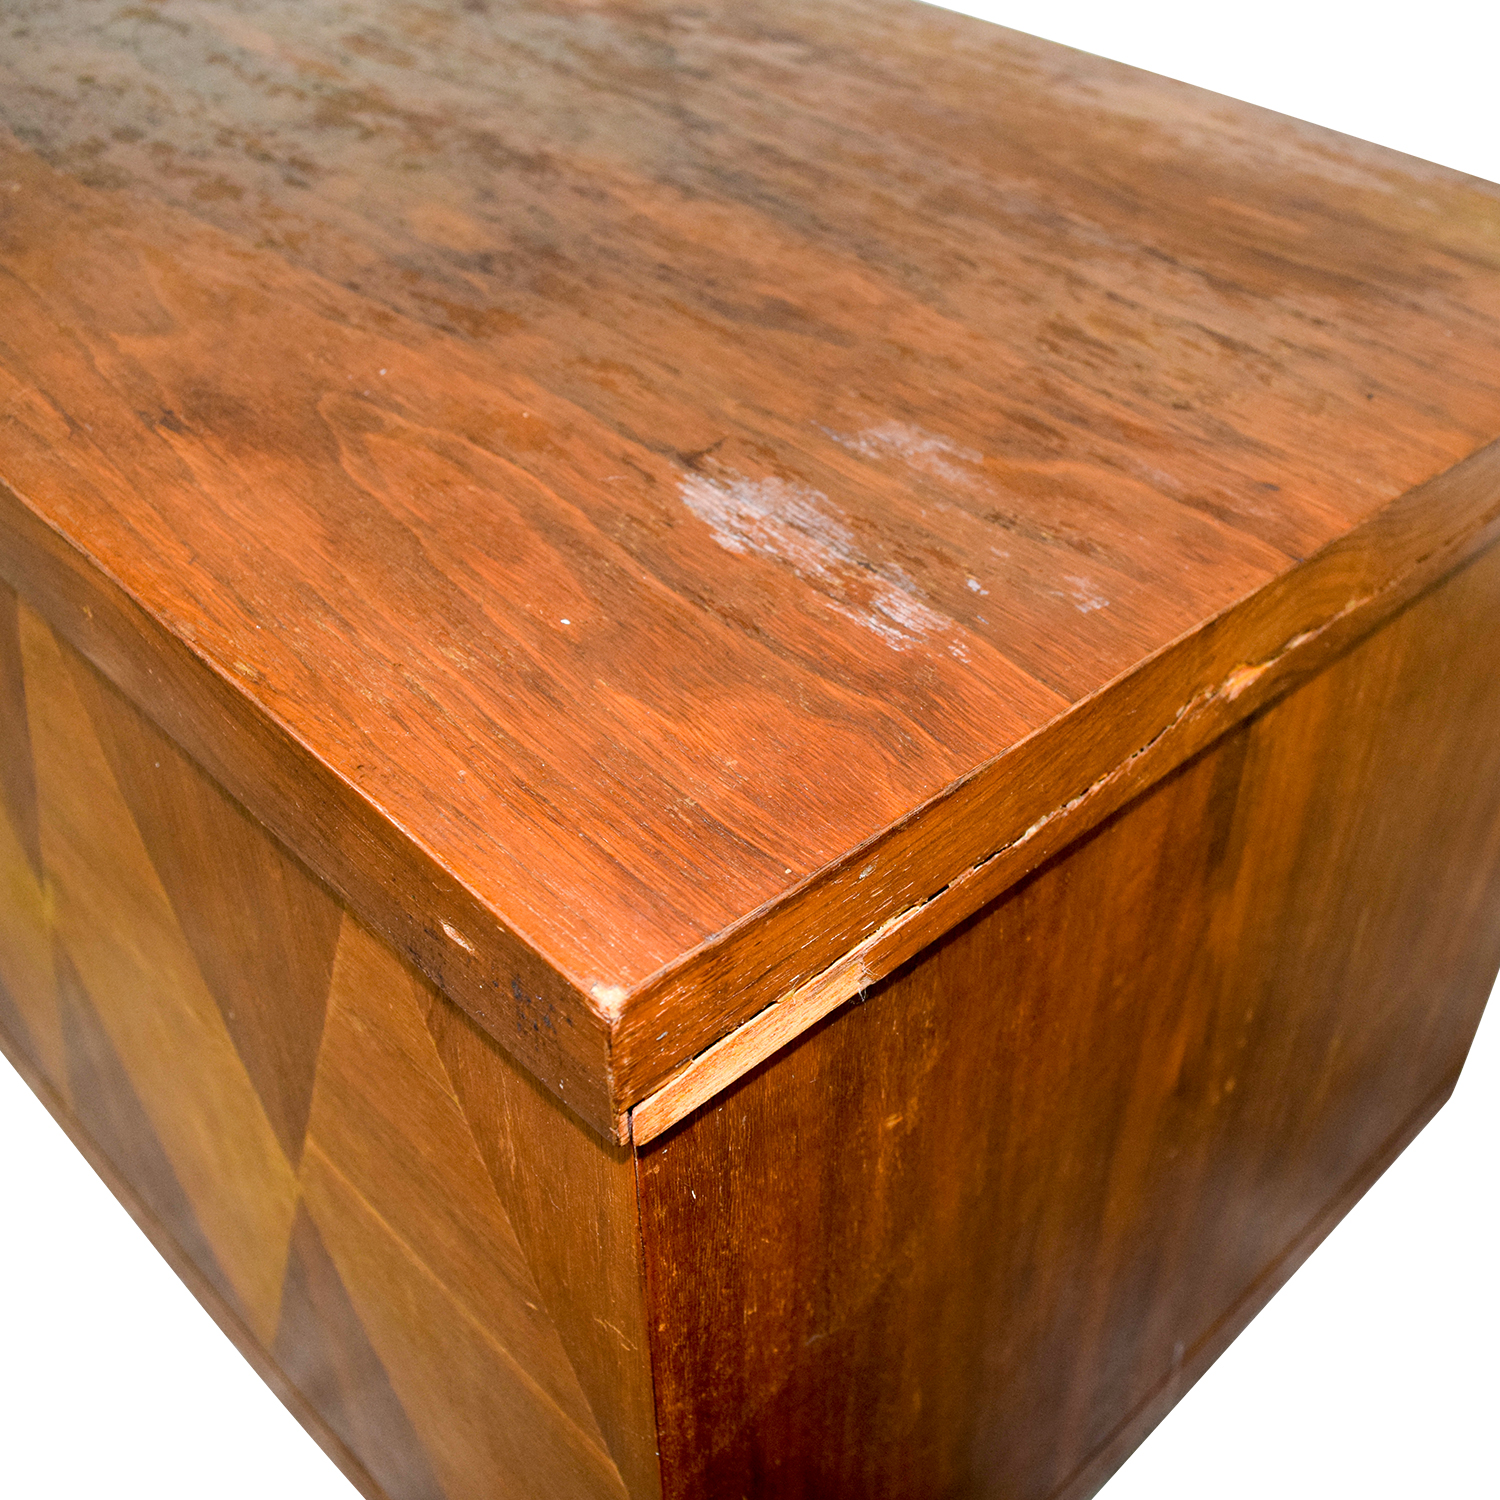 53% OFF Lane Furniture Lane Furniture Wooden Trunk Coffee Table